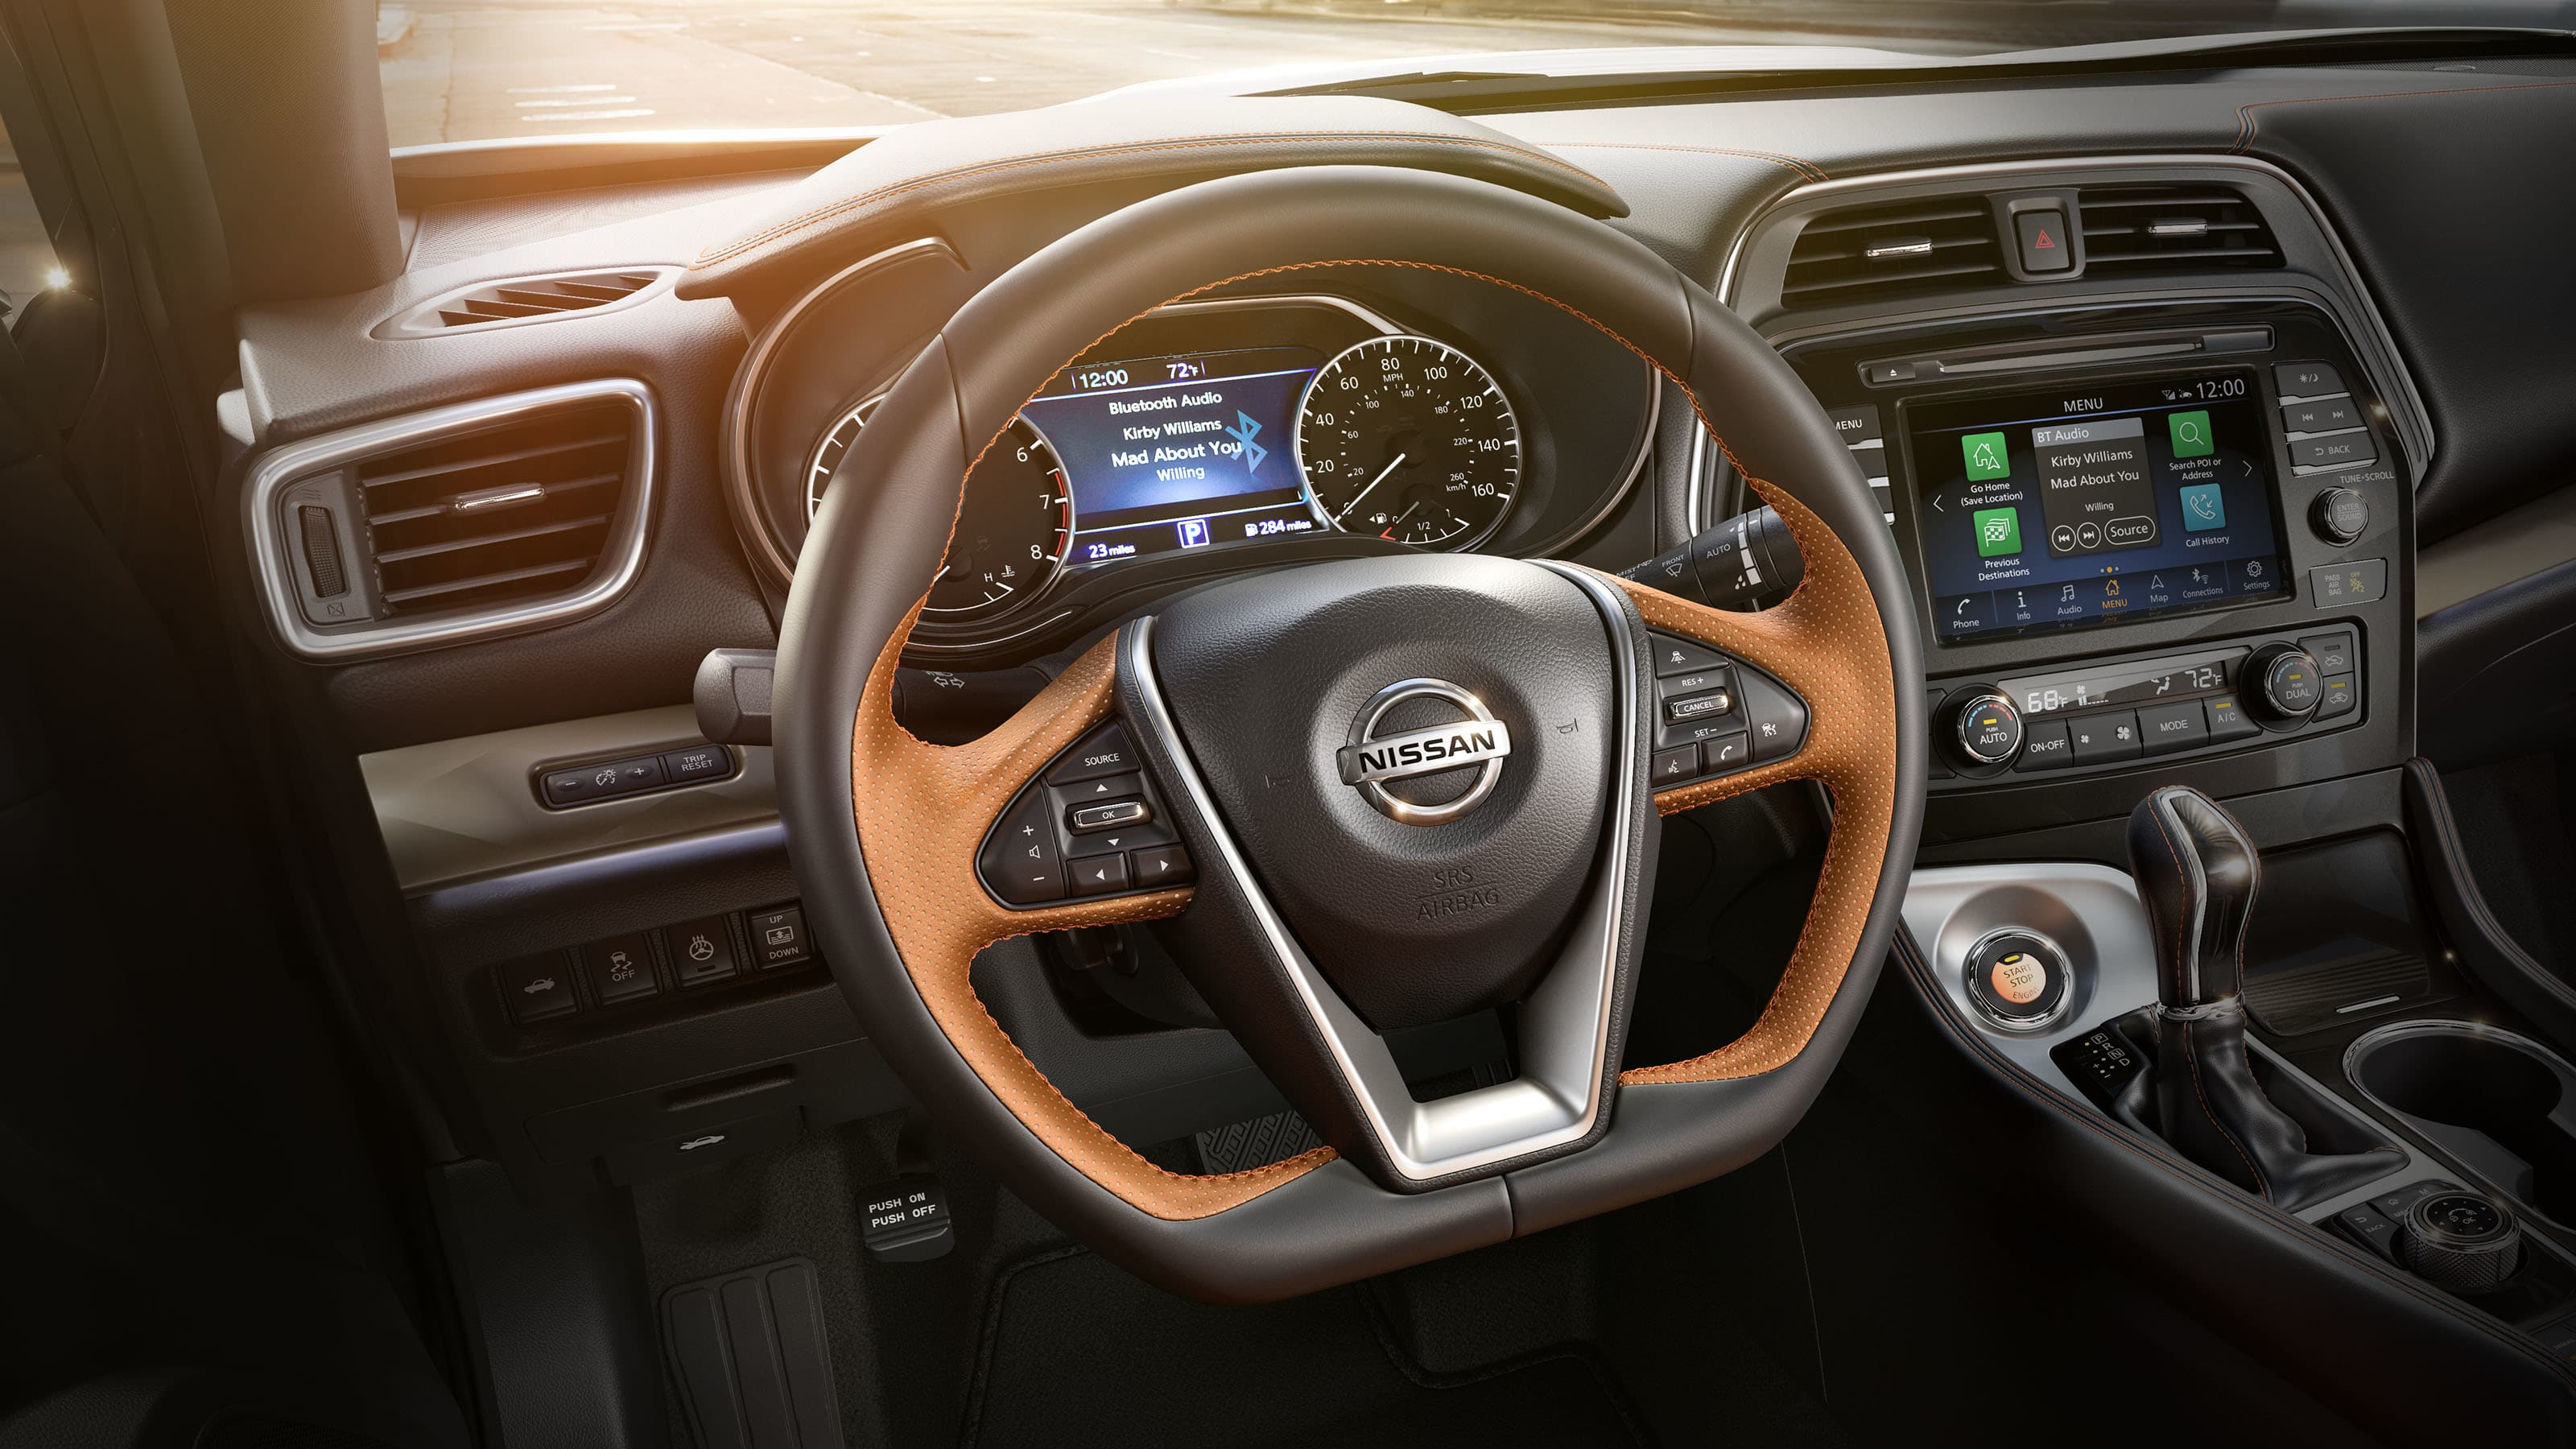 Nissan Maxima D-shaped steering wheel